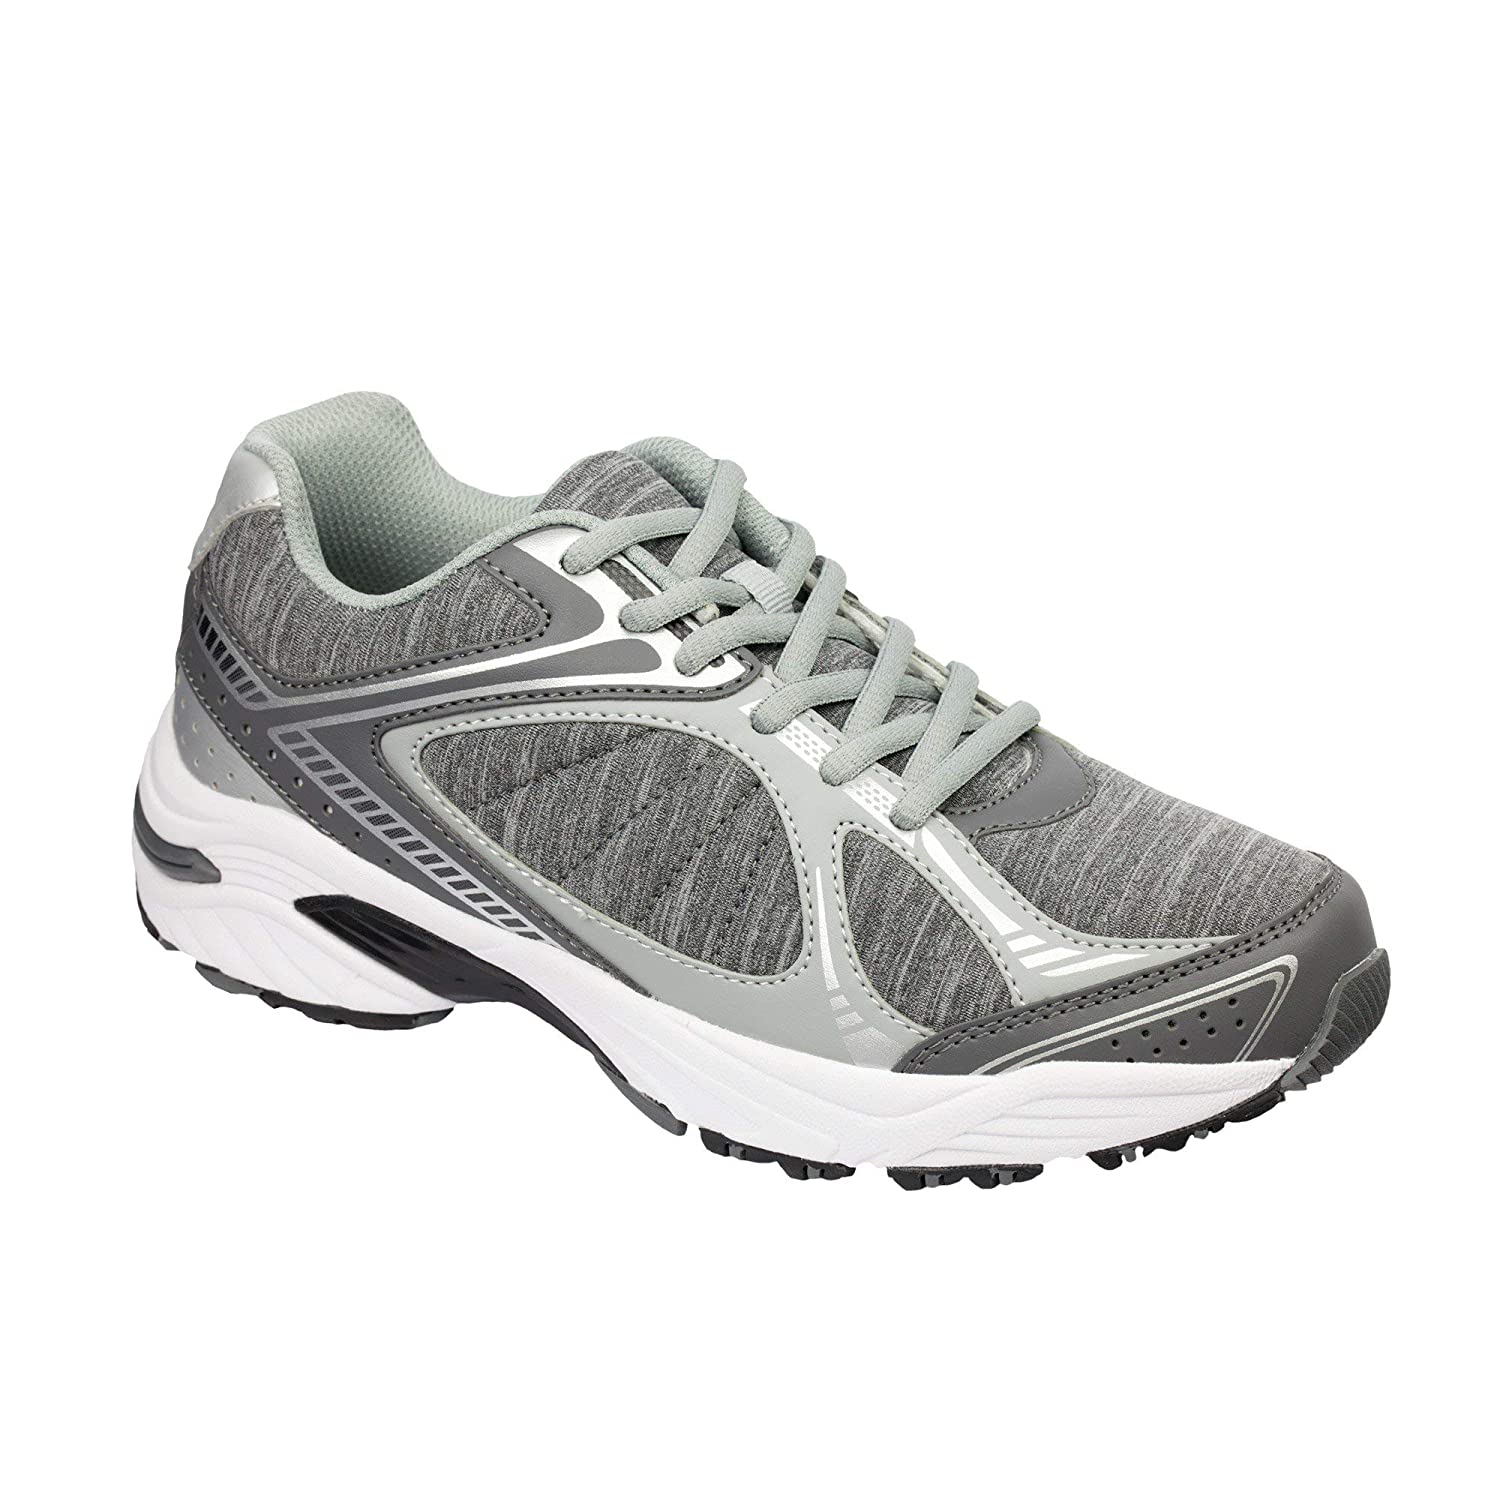 New Sprinter Grigio Scholl 46: Amazon.es: Zapatos y complementos